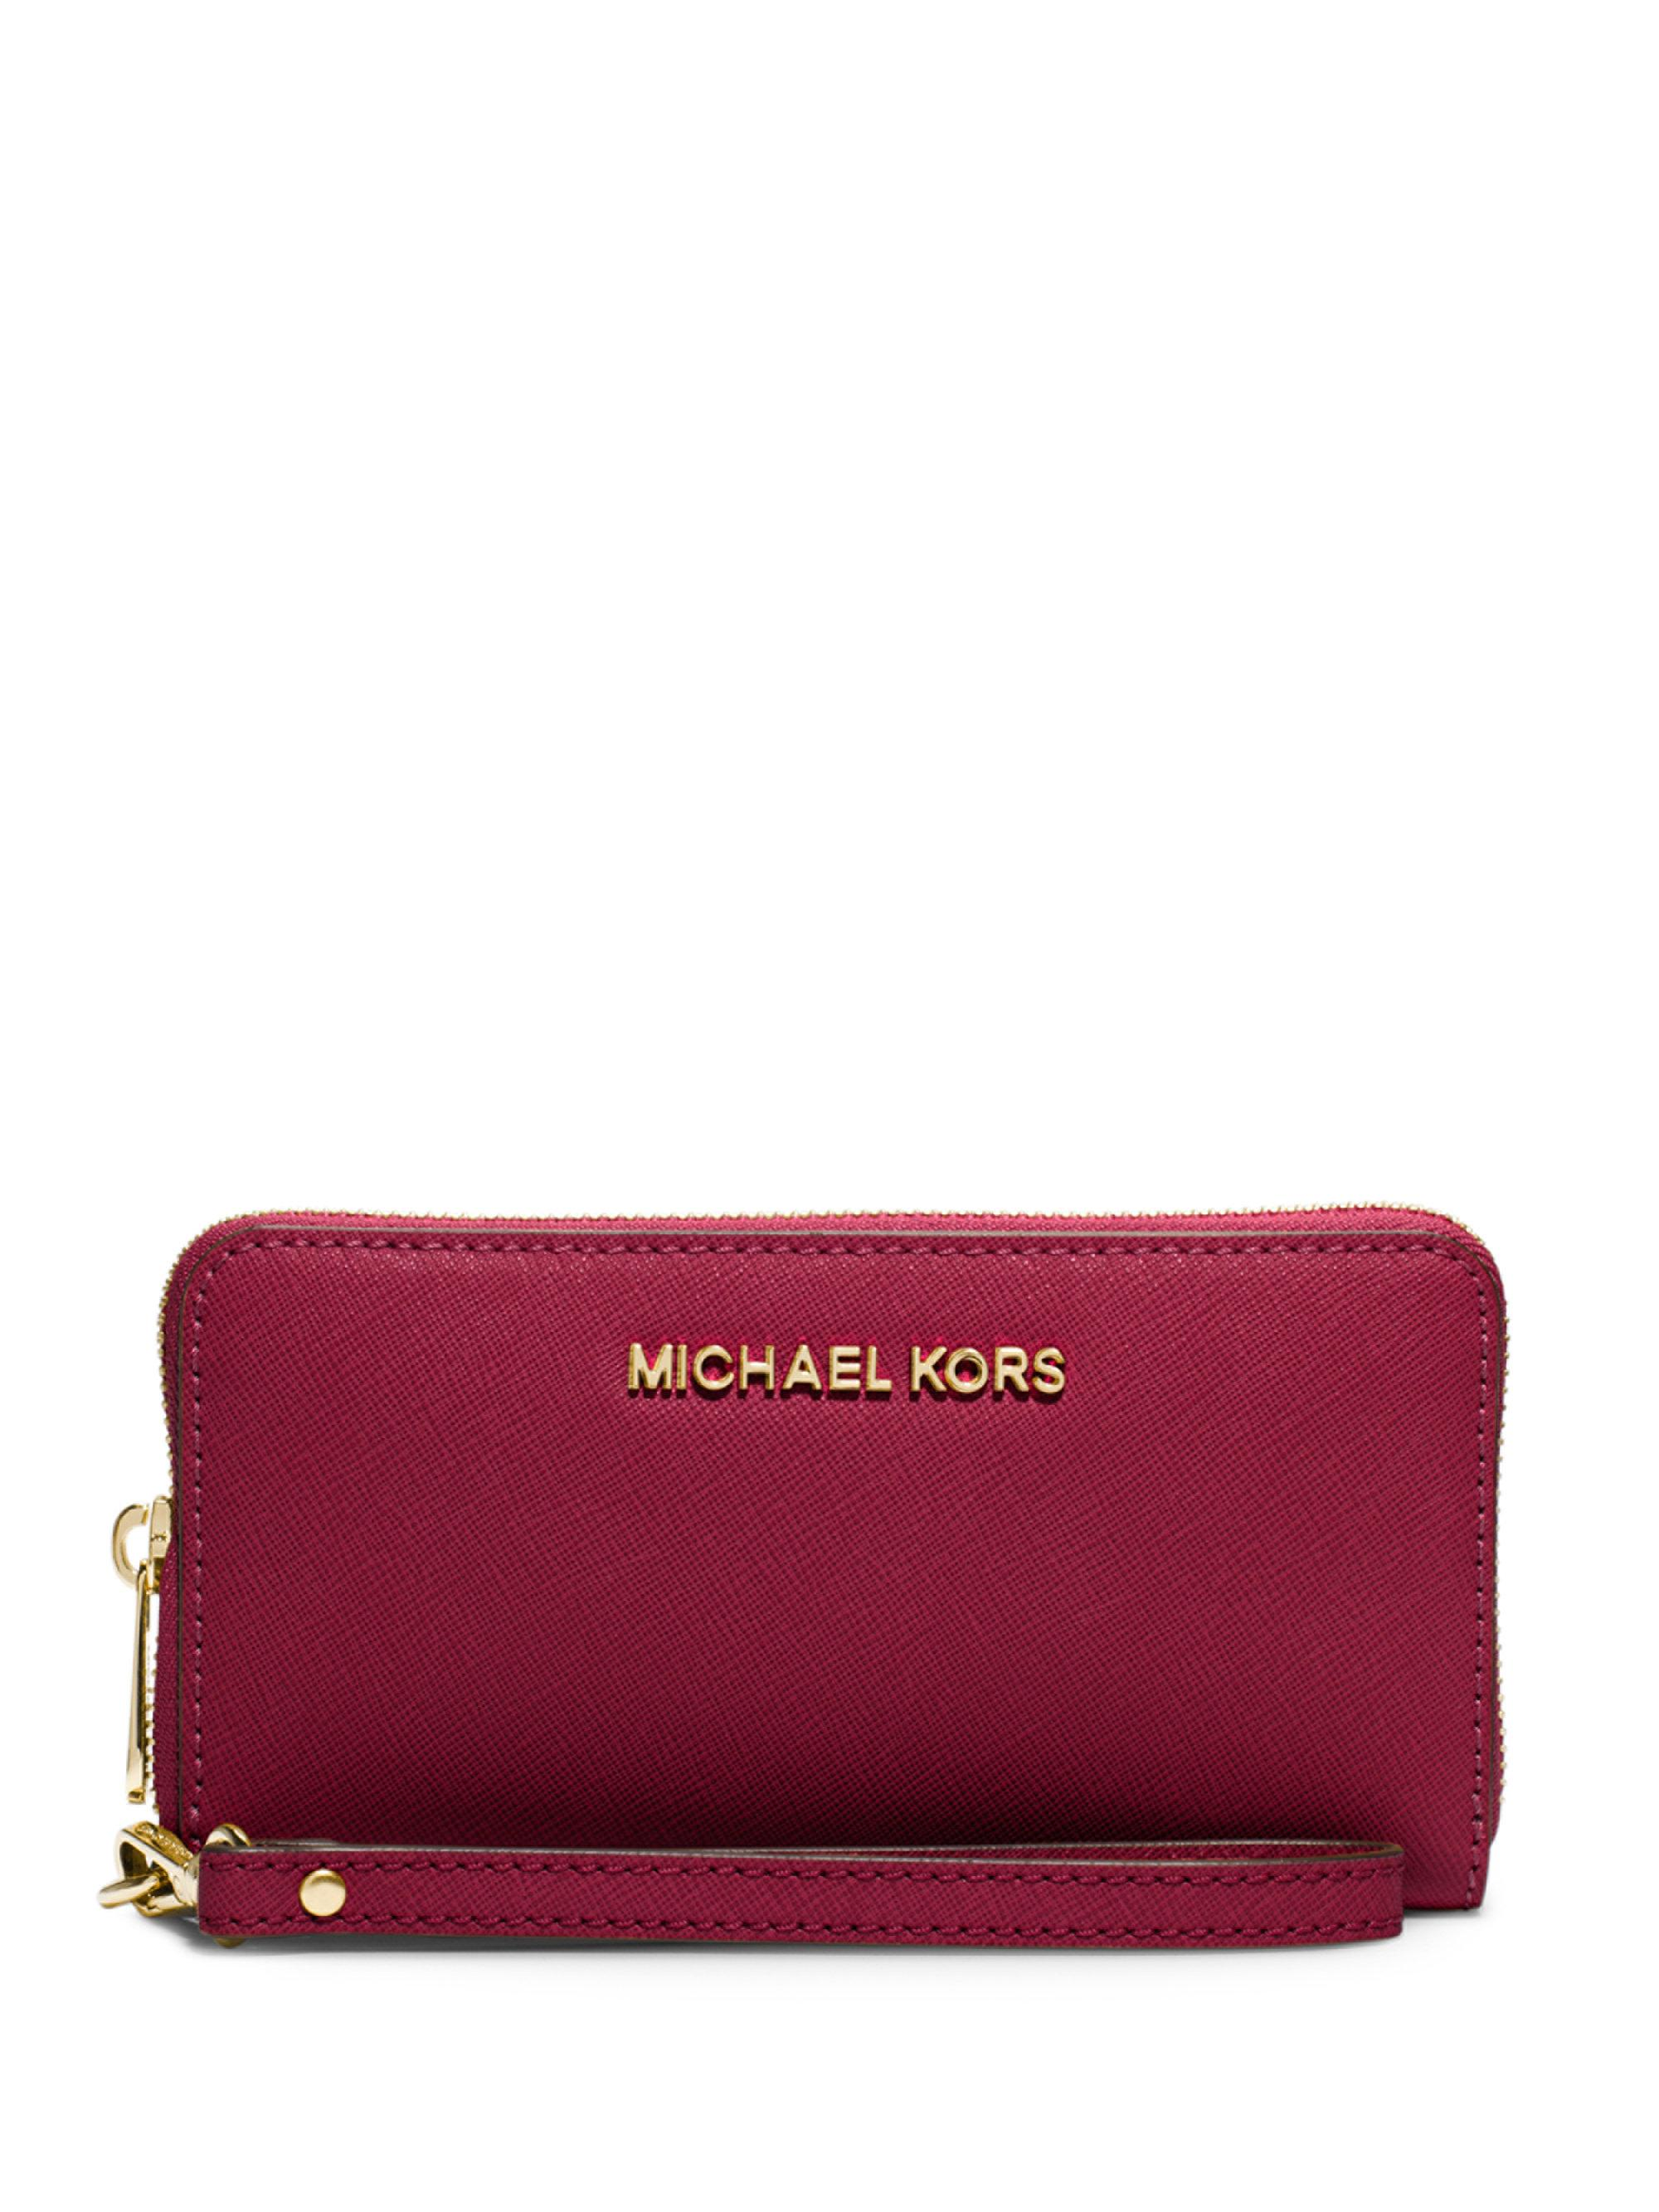 169f8fc9bcaf Lyst - Michael Kors Large Smartphone Wristlet in Red